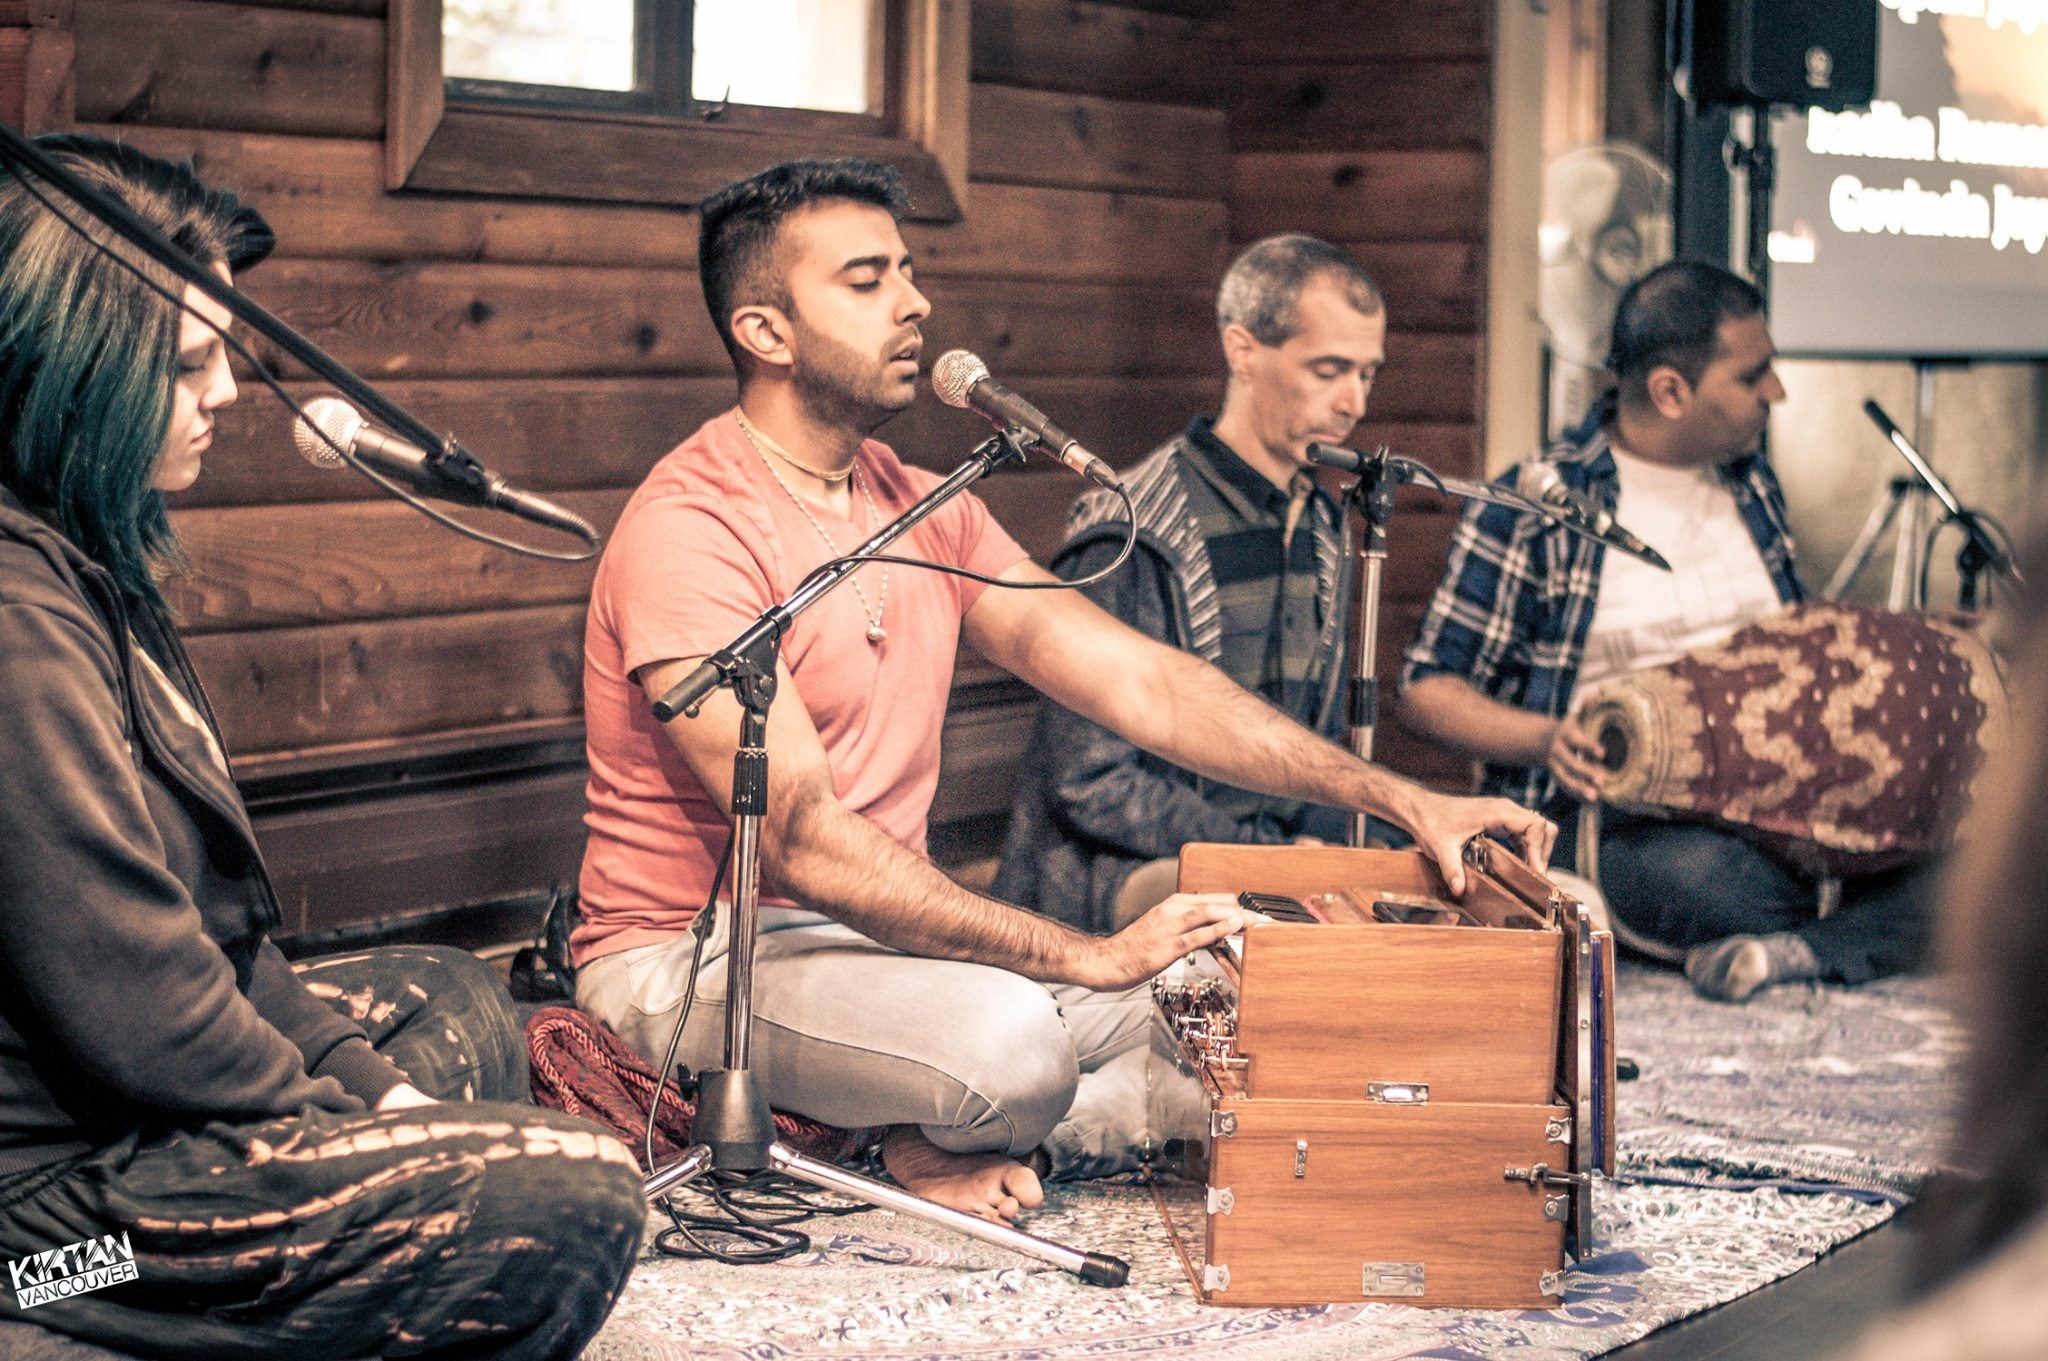 sound meditation at Kirtan Vancouver